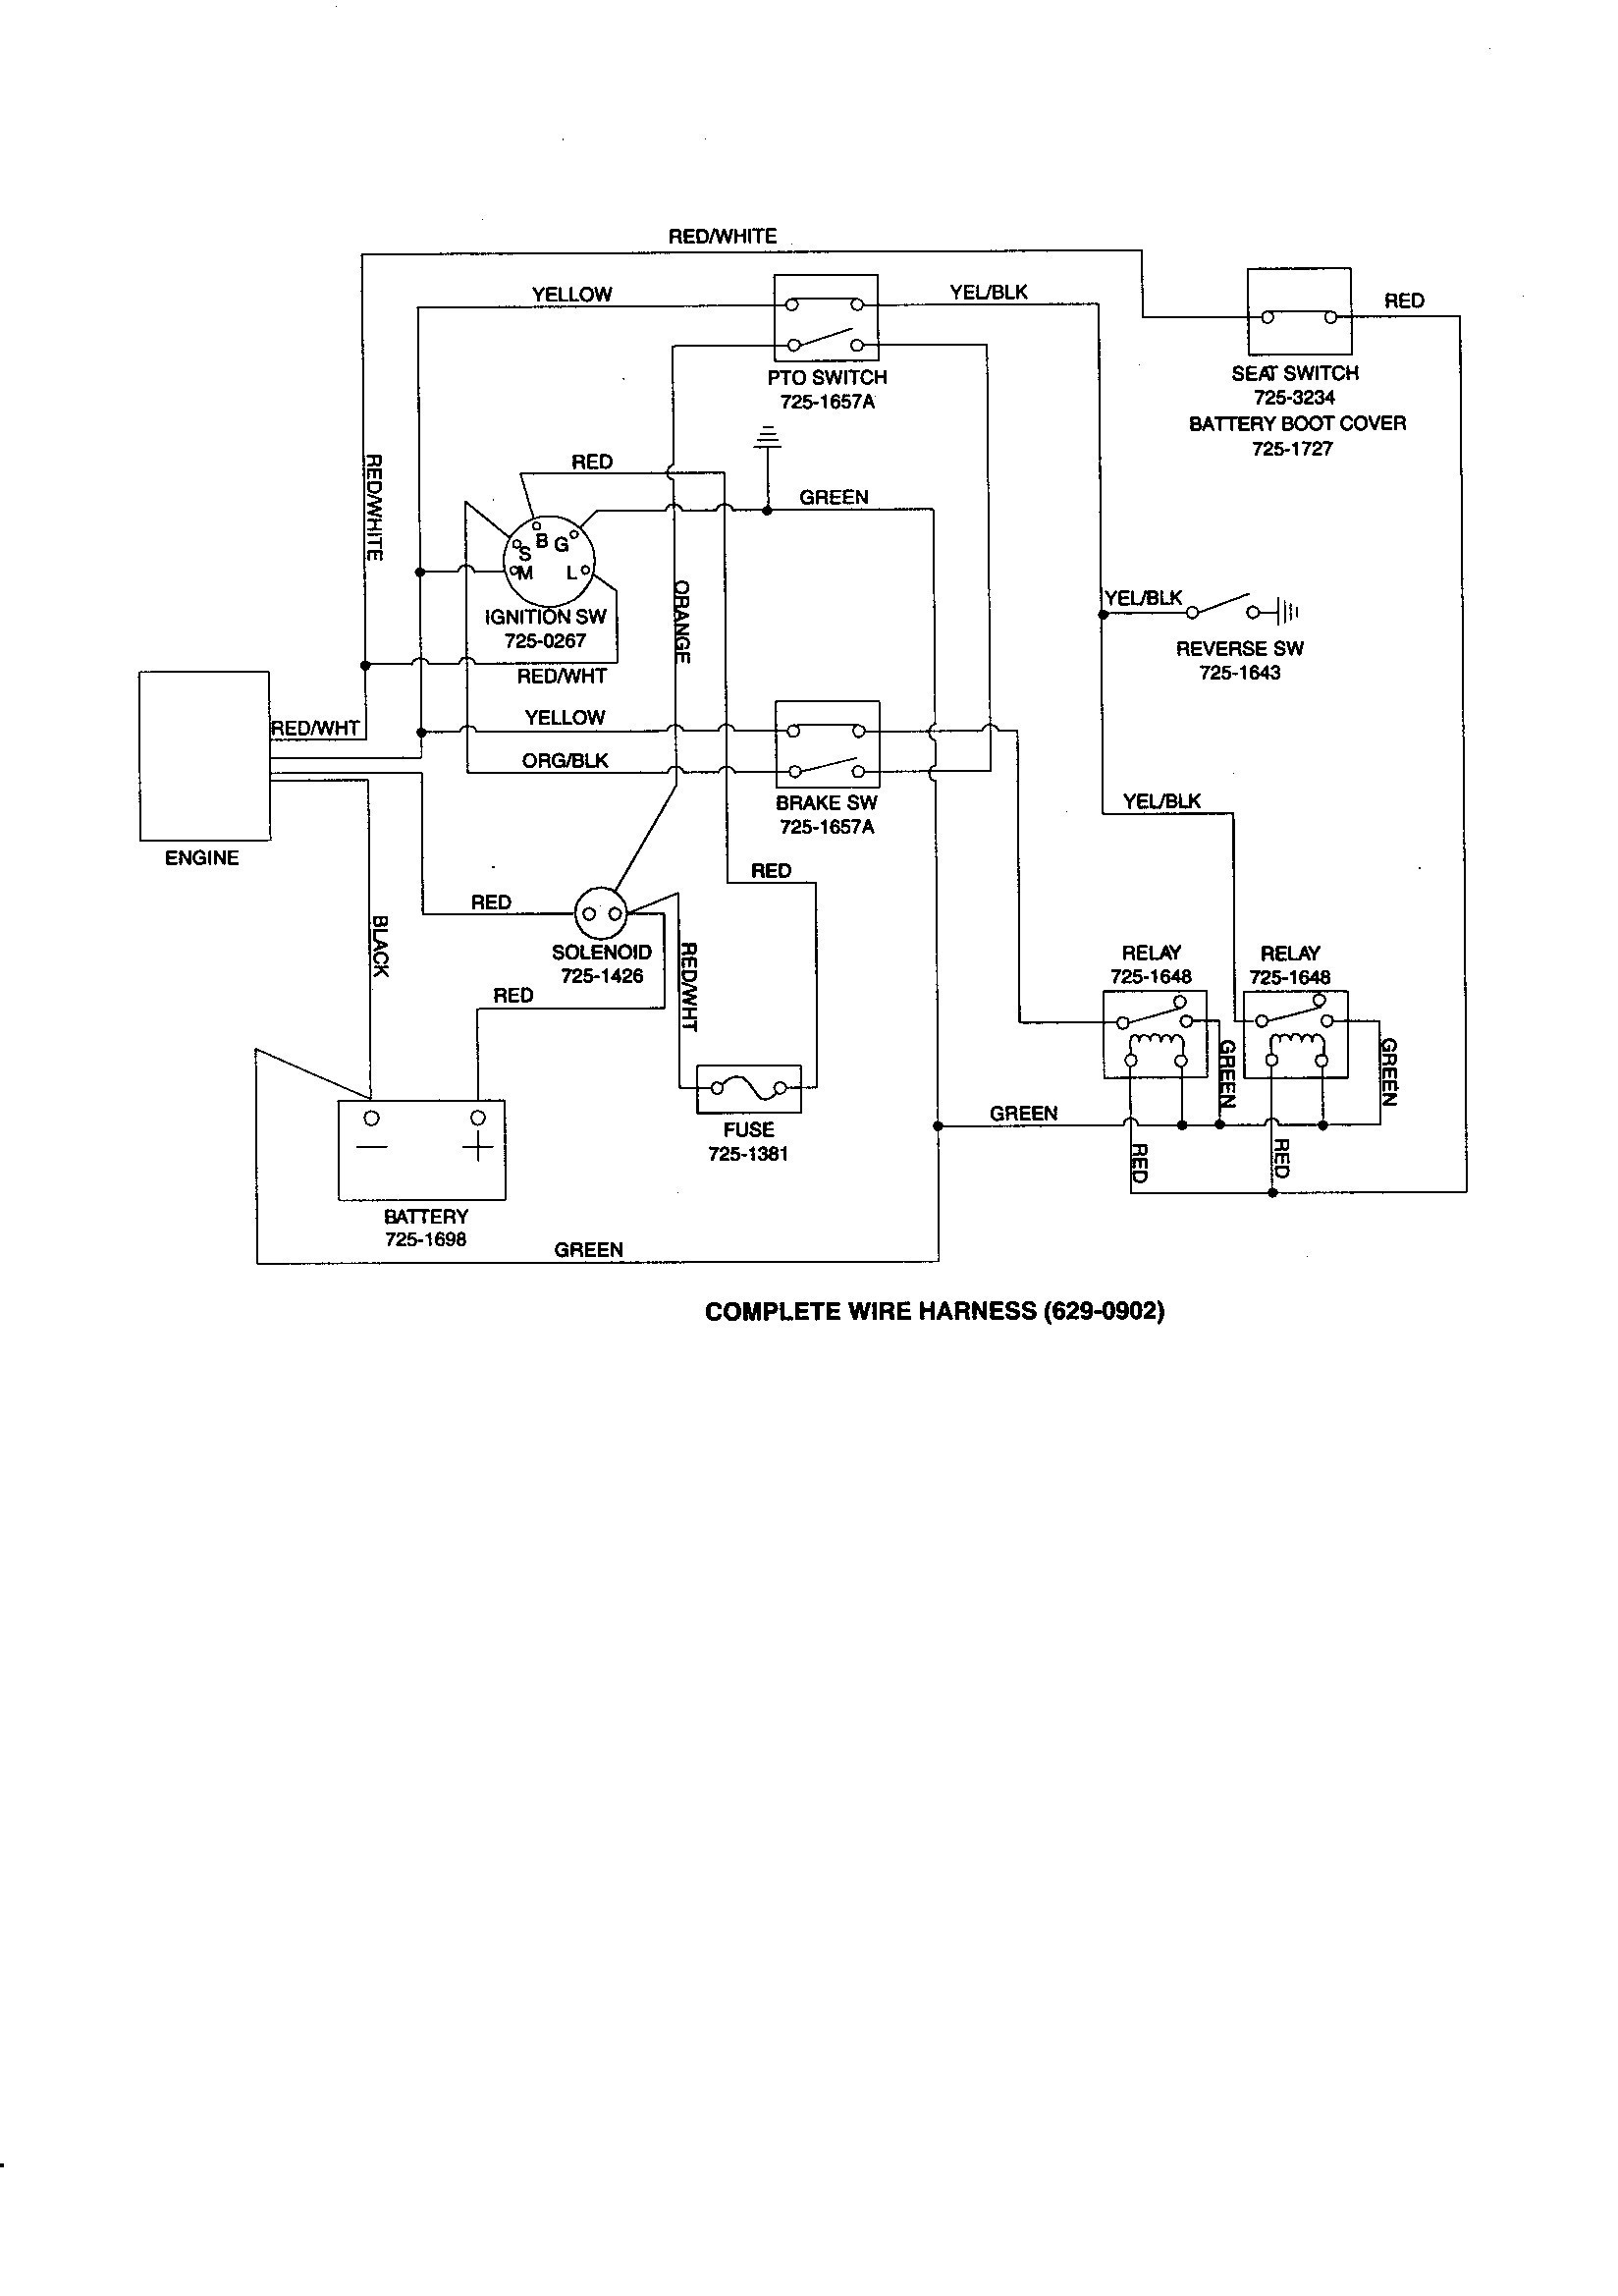 Wiring Diagram for Lze730gka604a3 Lawnmower Sears Lawn Tractor Wiring Diagram Sample Of Wiring Diagram for Lze730gka604a3 Lawnmower